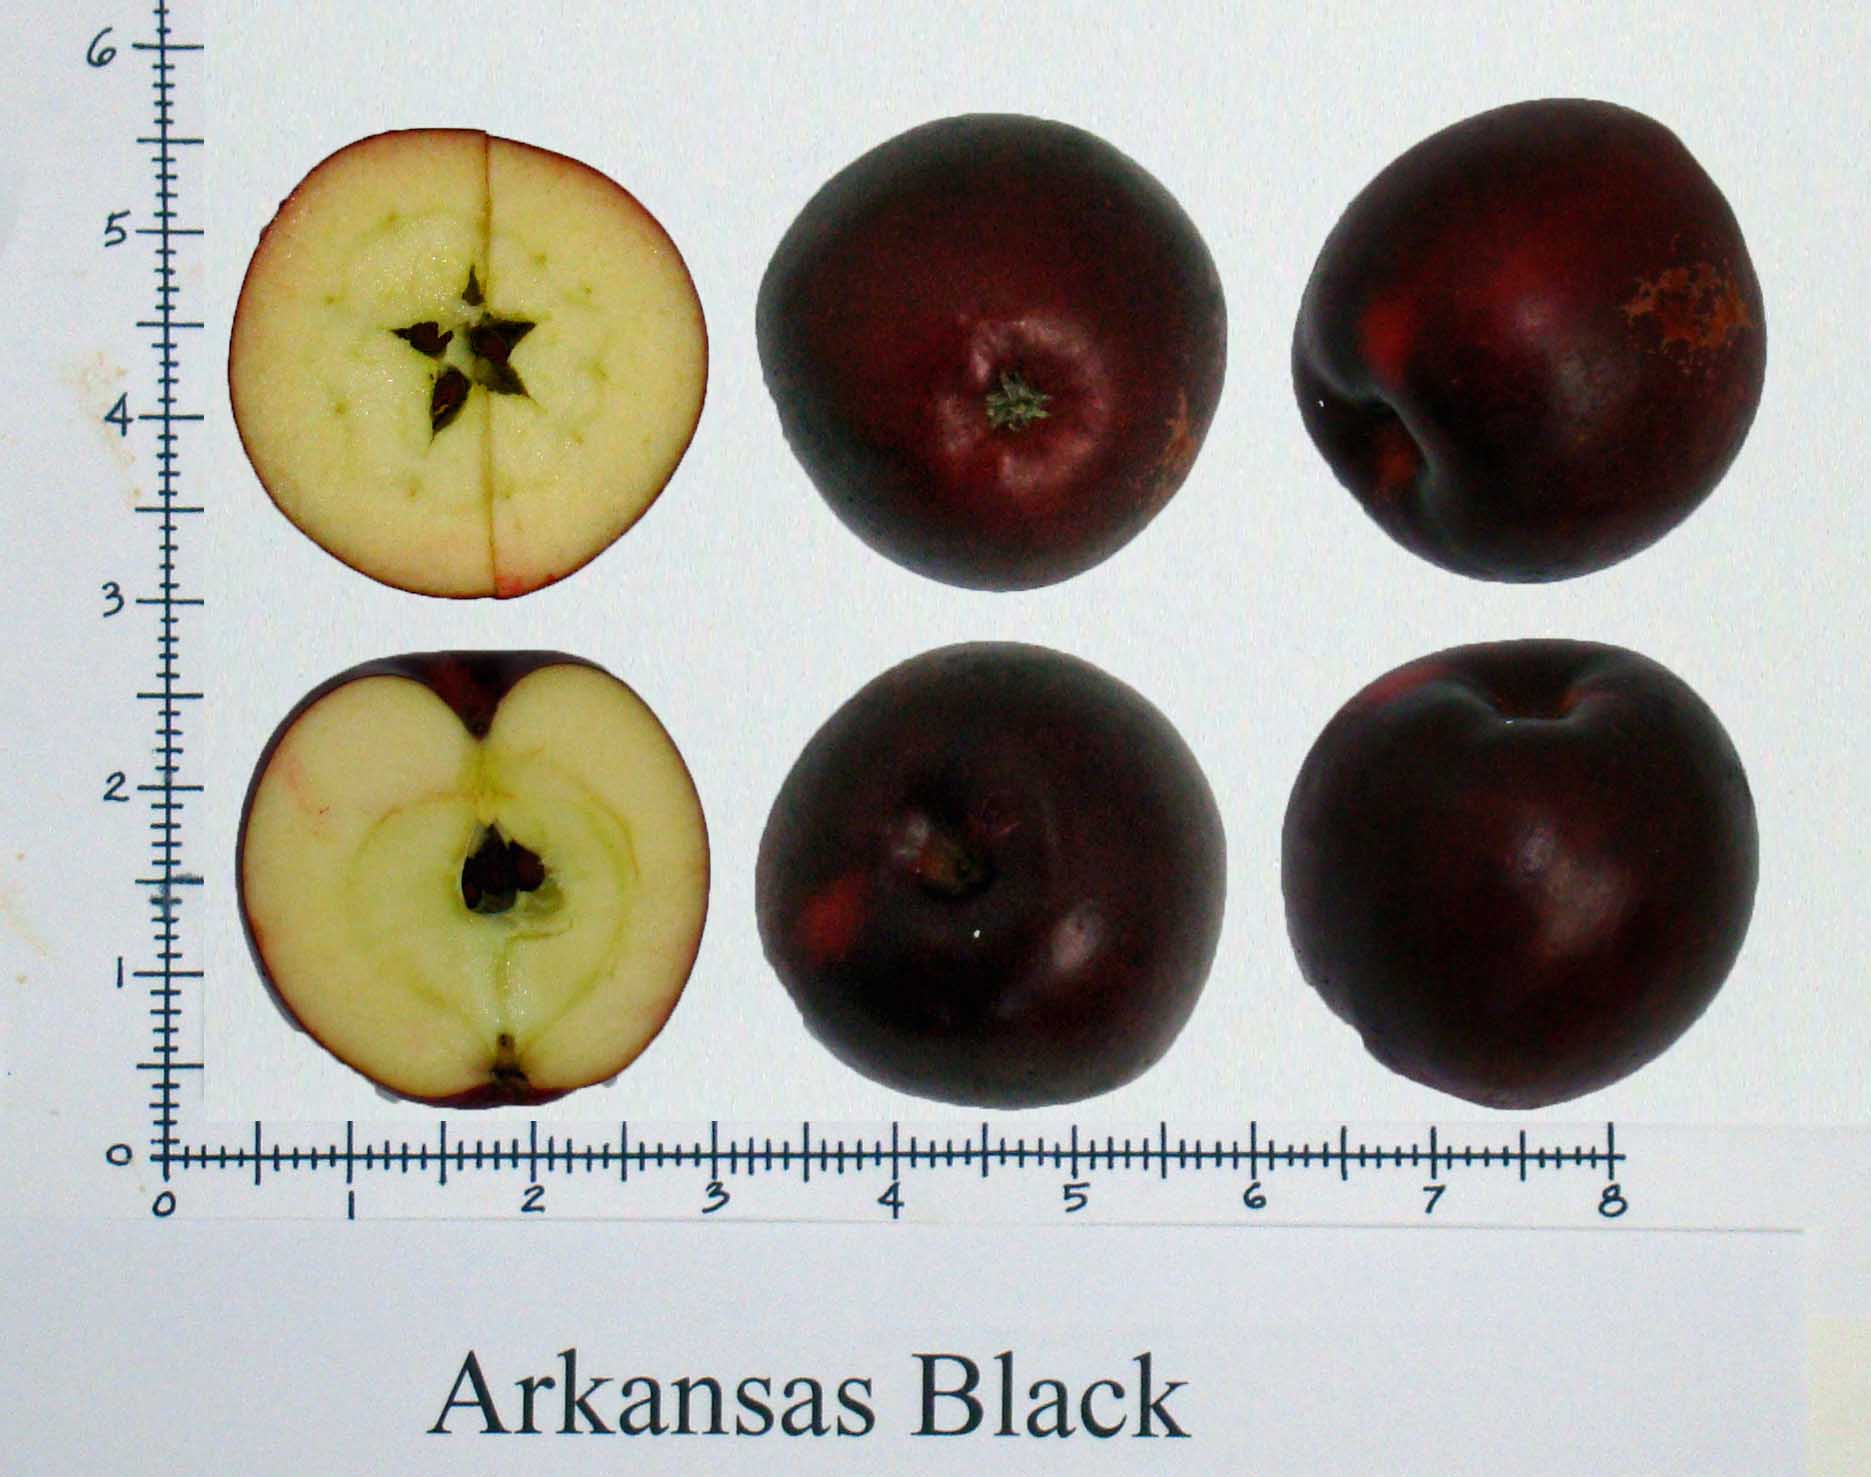 Arkansas Black